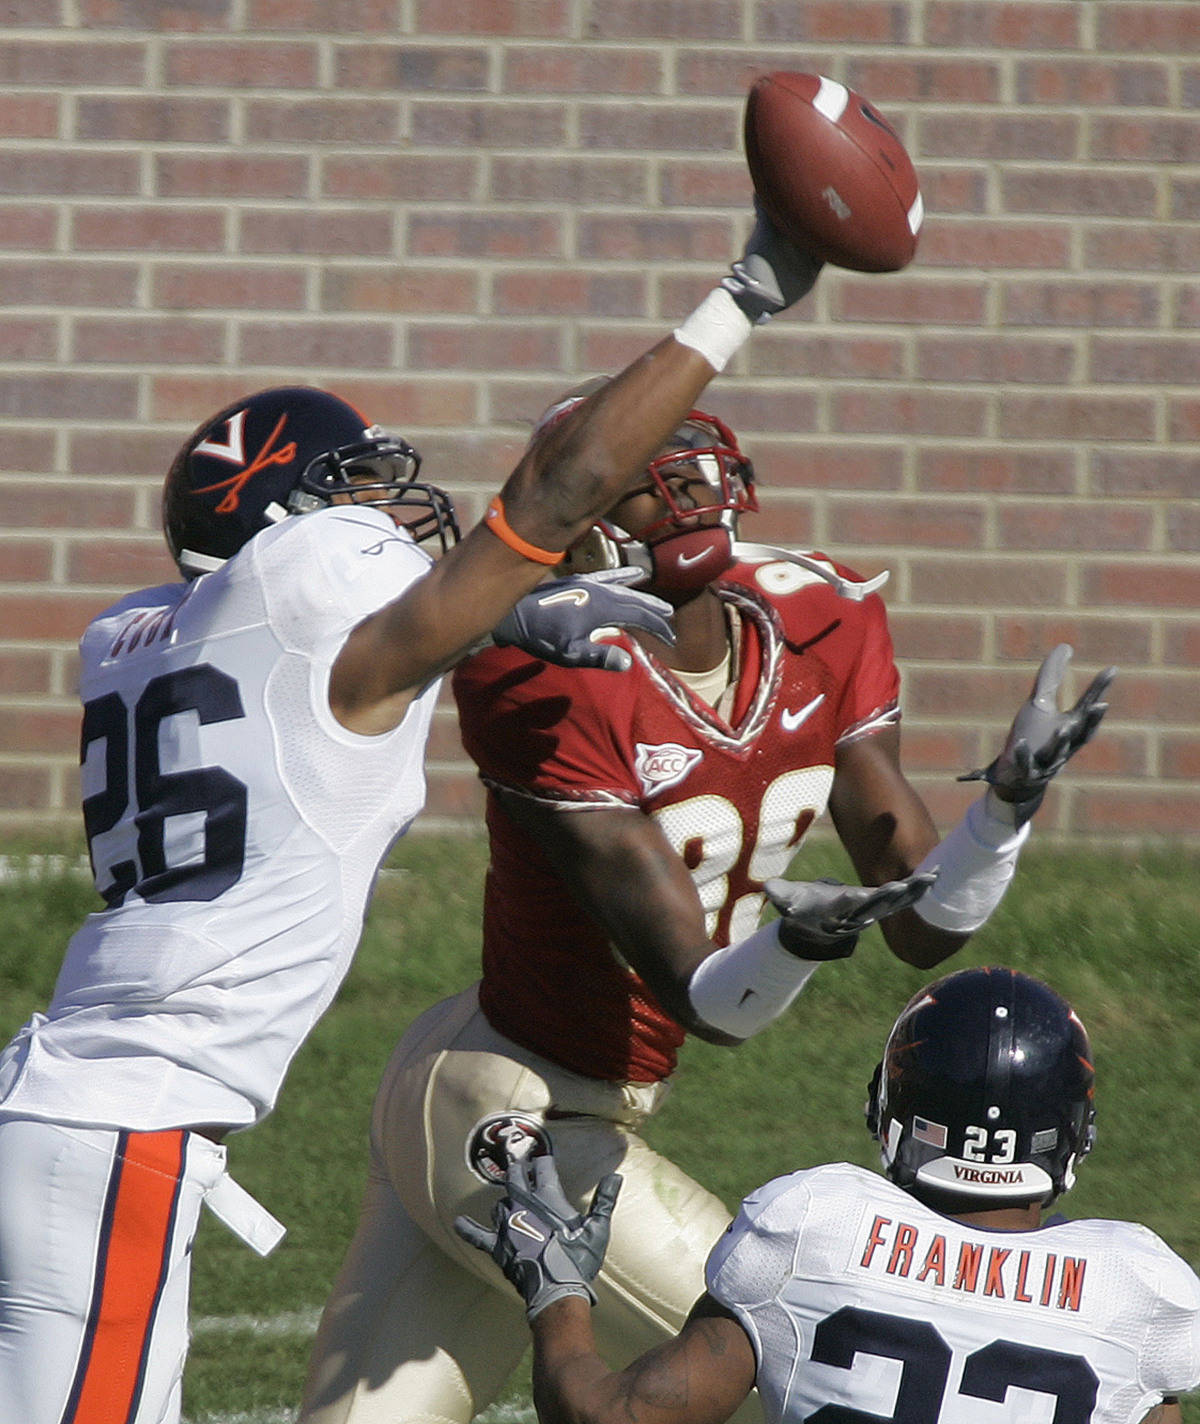 Virginia defender Chris Cook, left, knocks the ball away from Florida State receiver Greg Carr during the third quarter of a college football game, Saturday, Nov. 4, 2006, in Tallahassee, Fla. Florida State won, 33-0. Virginia's Tony Franklin, bottom right, closes in on the play. (AP Photo/Phil Coale)